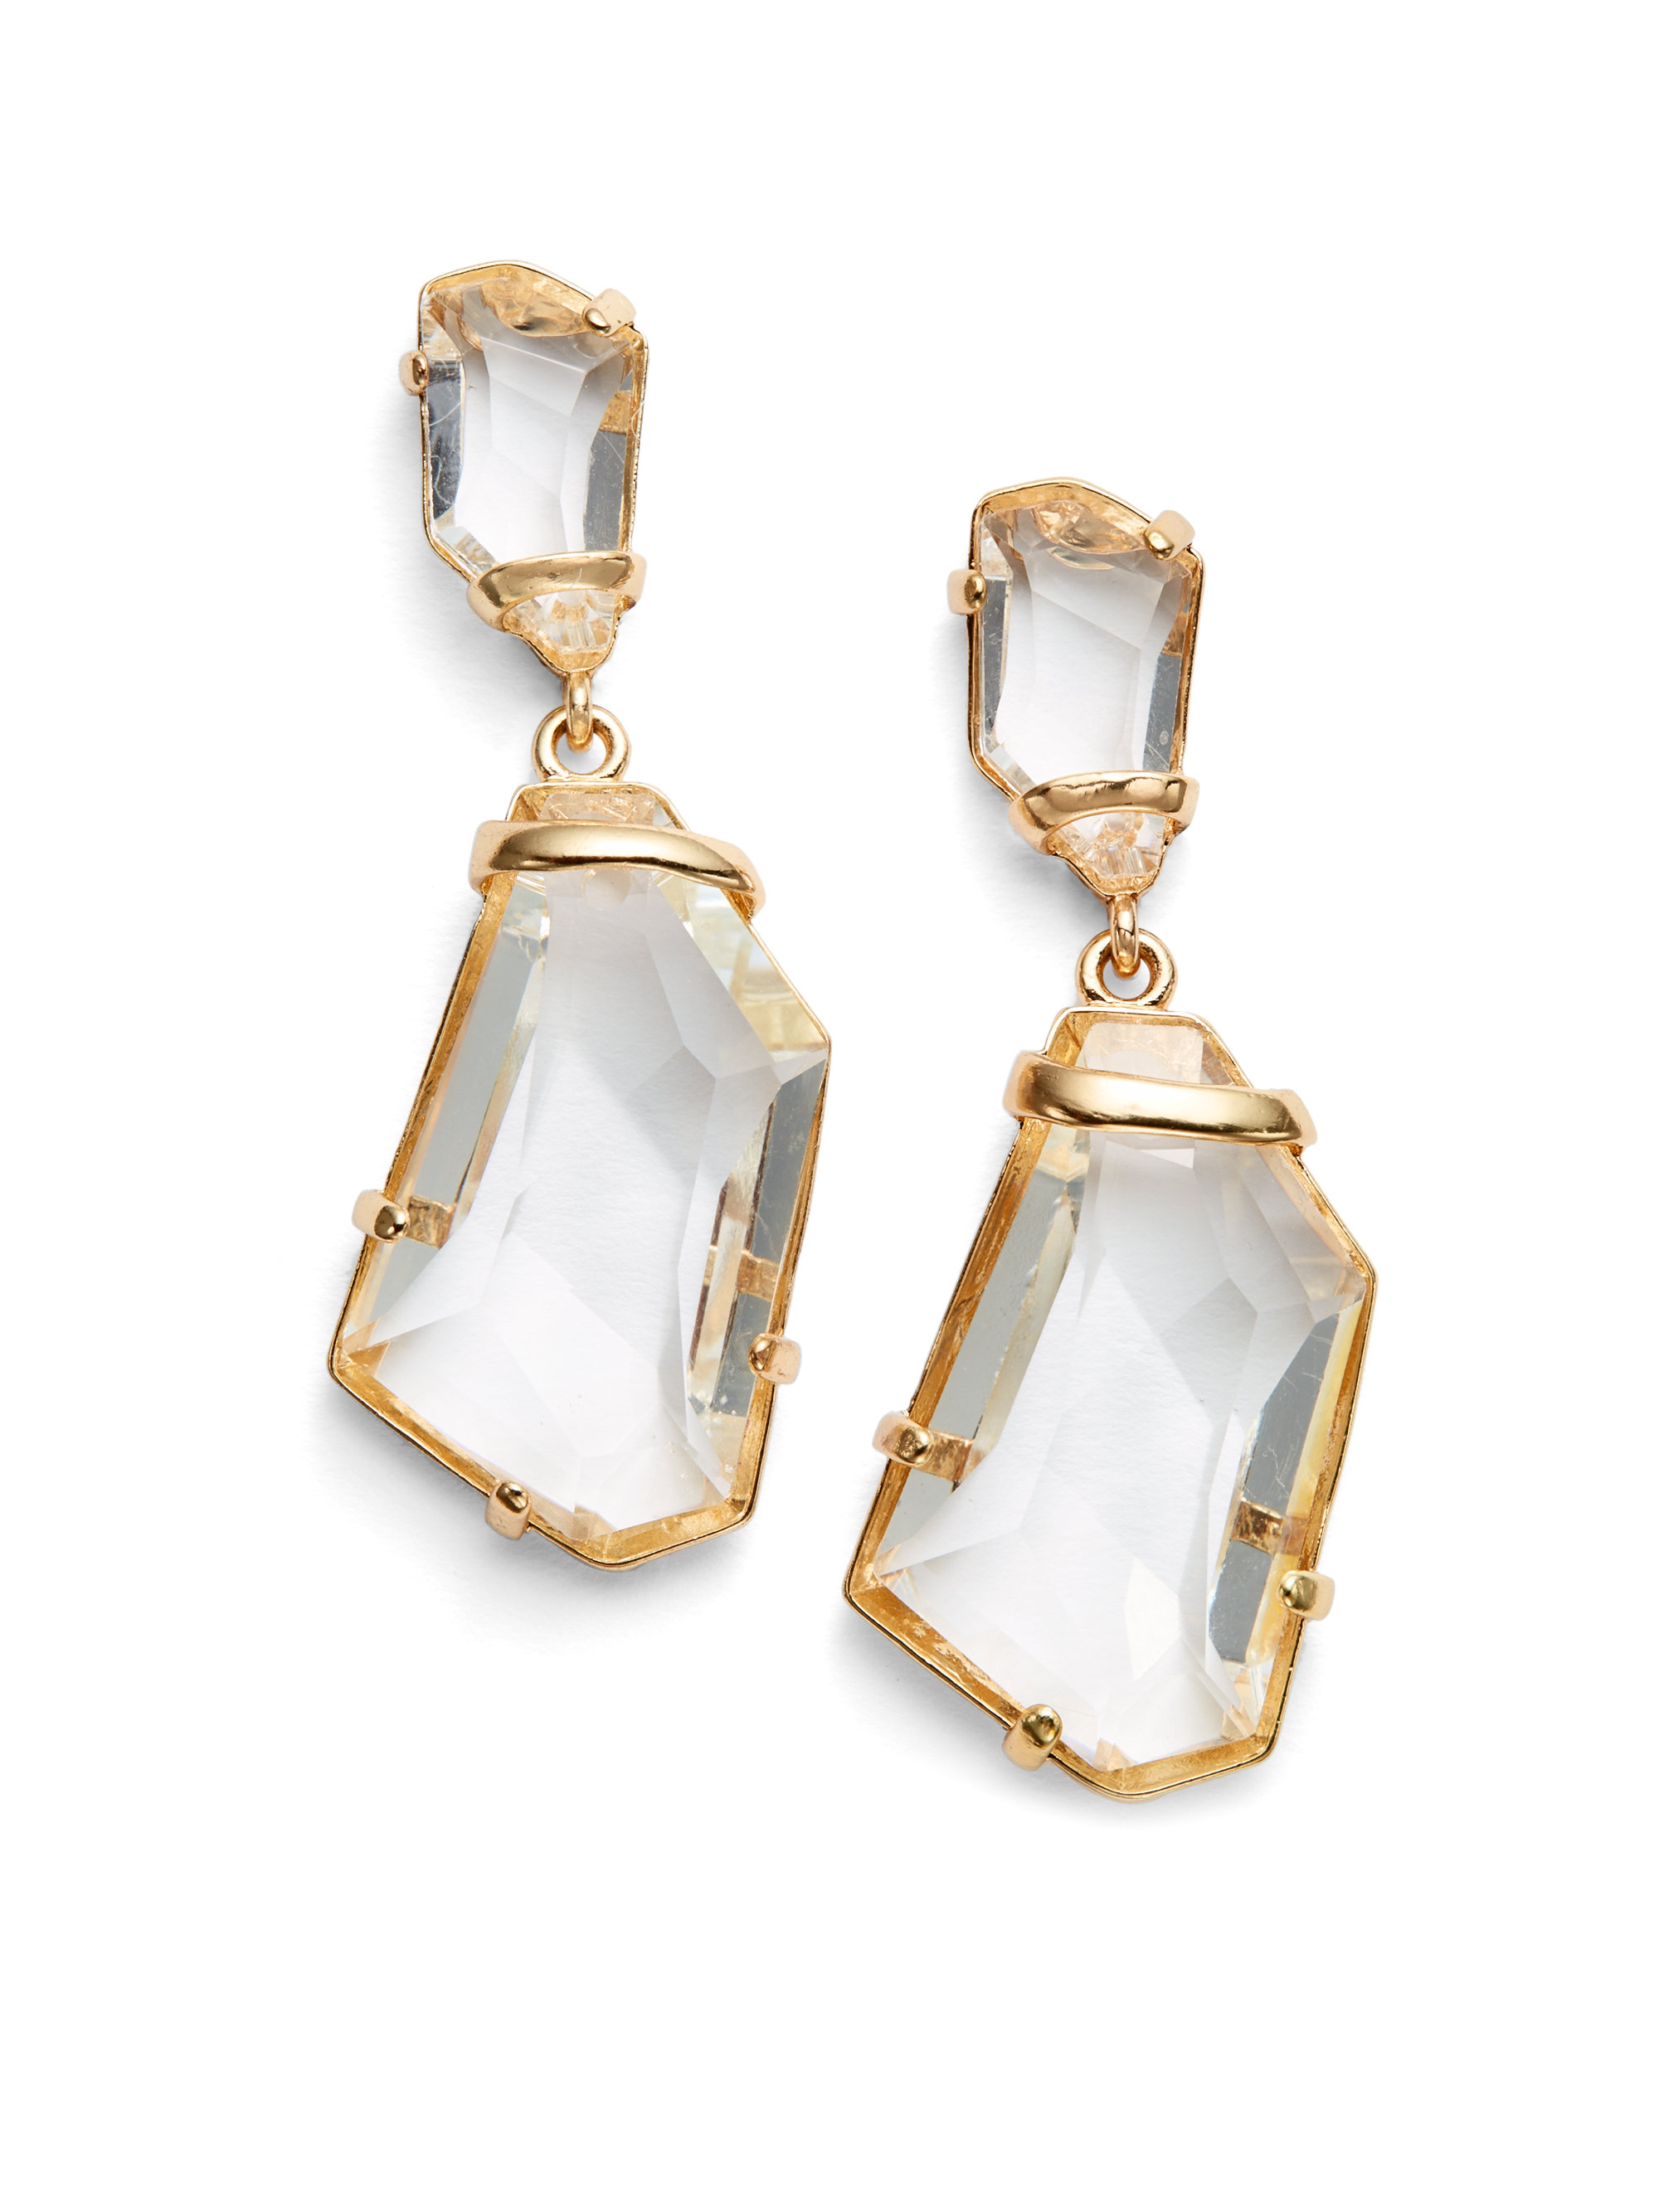 File:Kenneth Jay Lane Clear Crystal Drop earrings.jpg